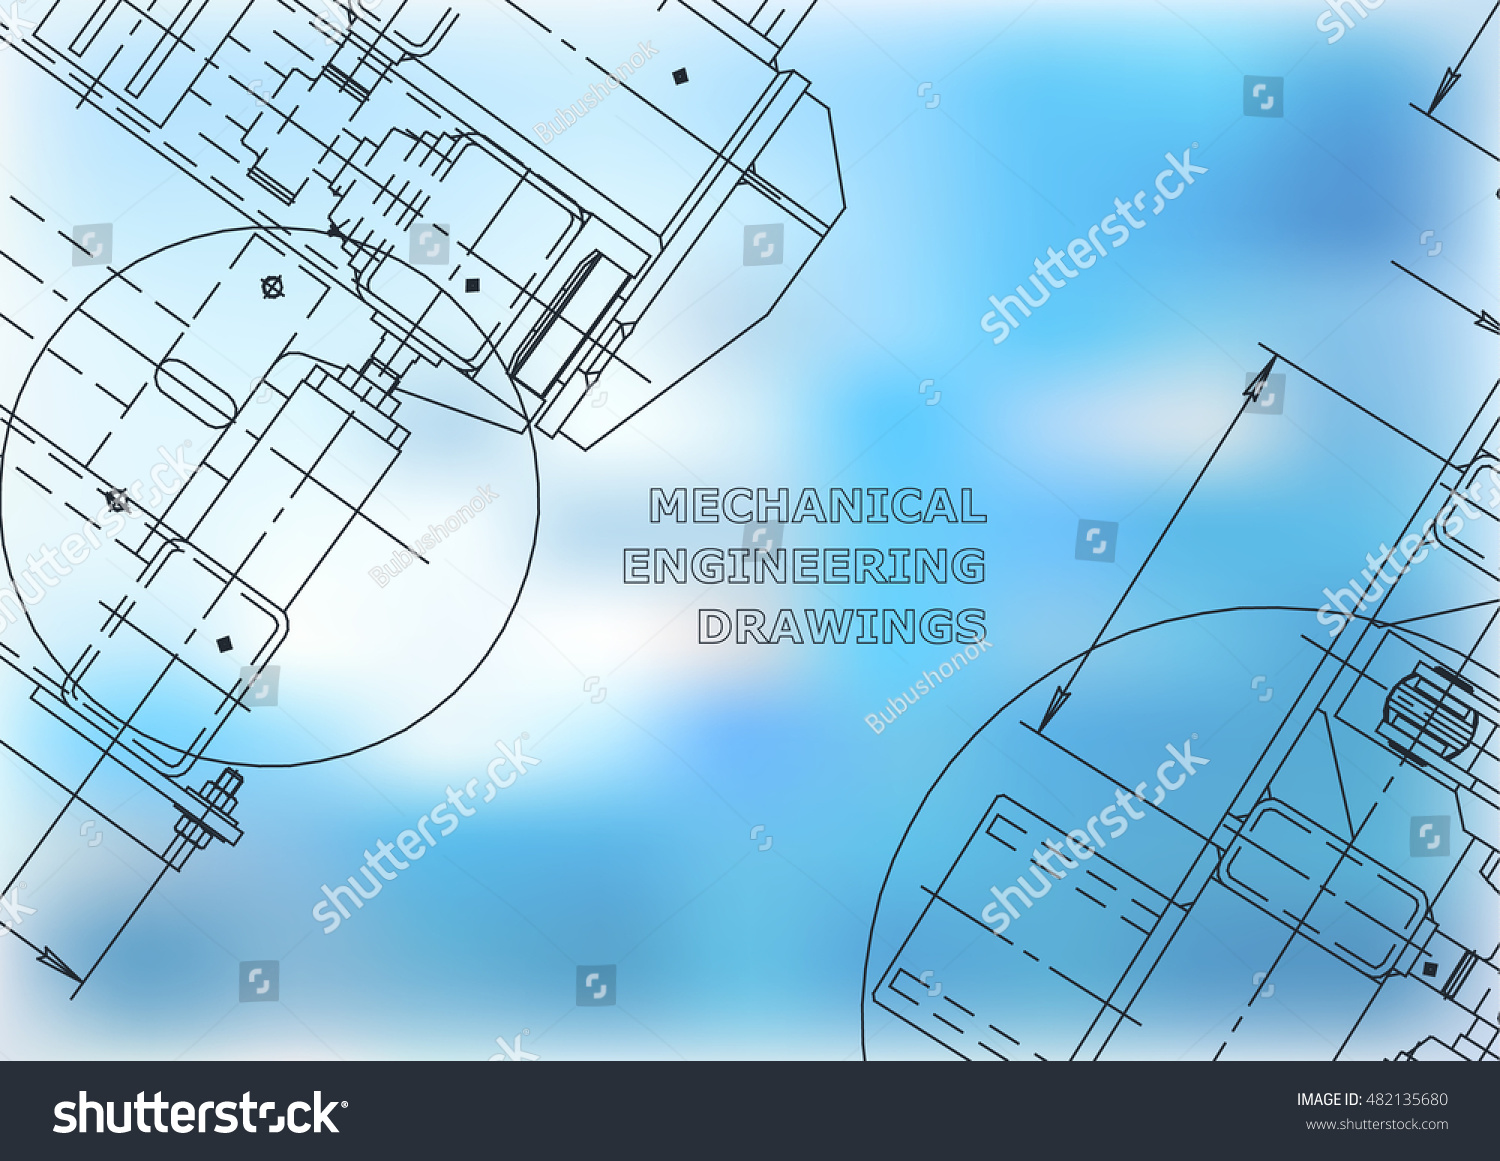 Blueprints mechanics cover blue mechanical engineering stock blueprints mechanics cover blue mechanical engineering drawing engineering design construction malvernweather